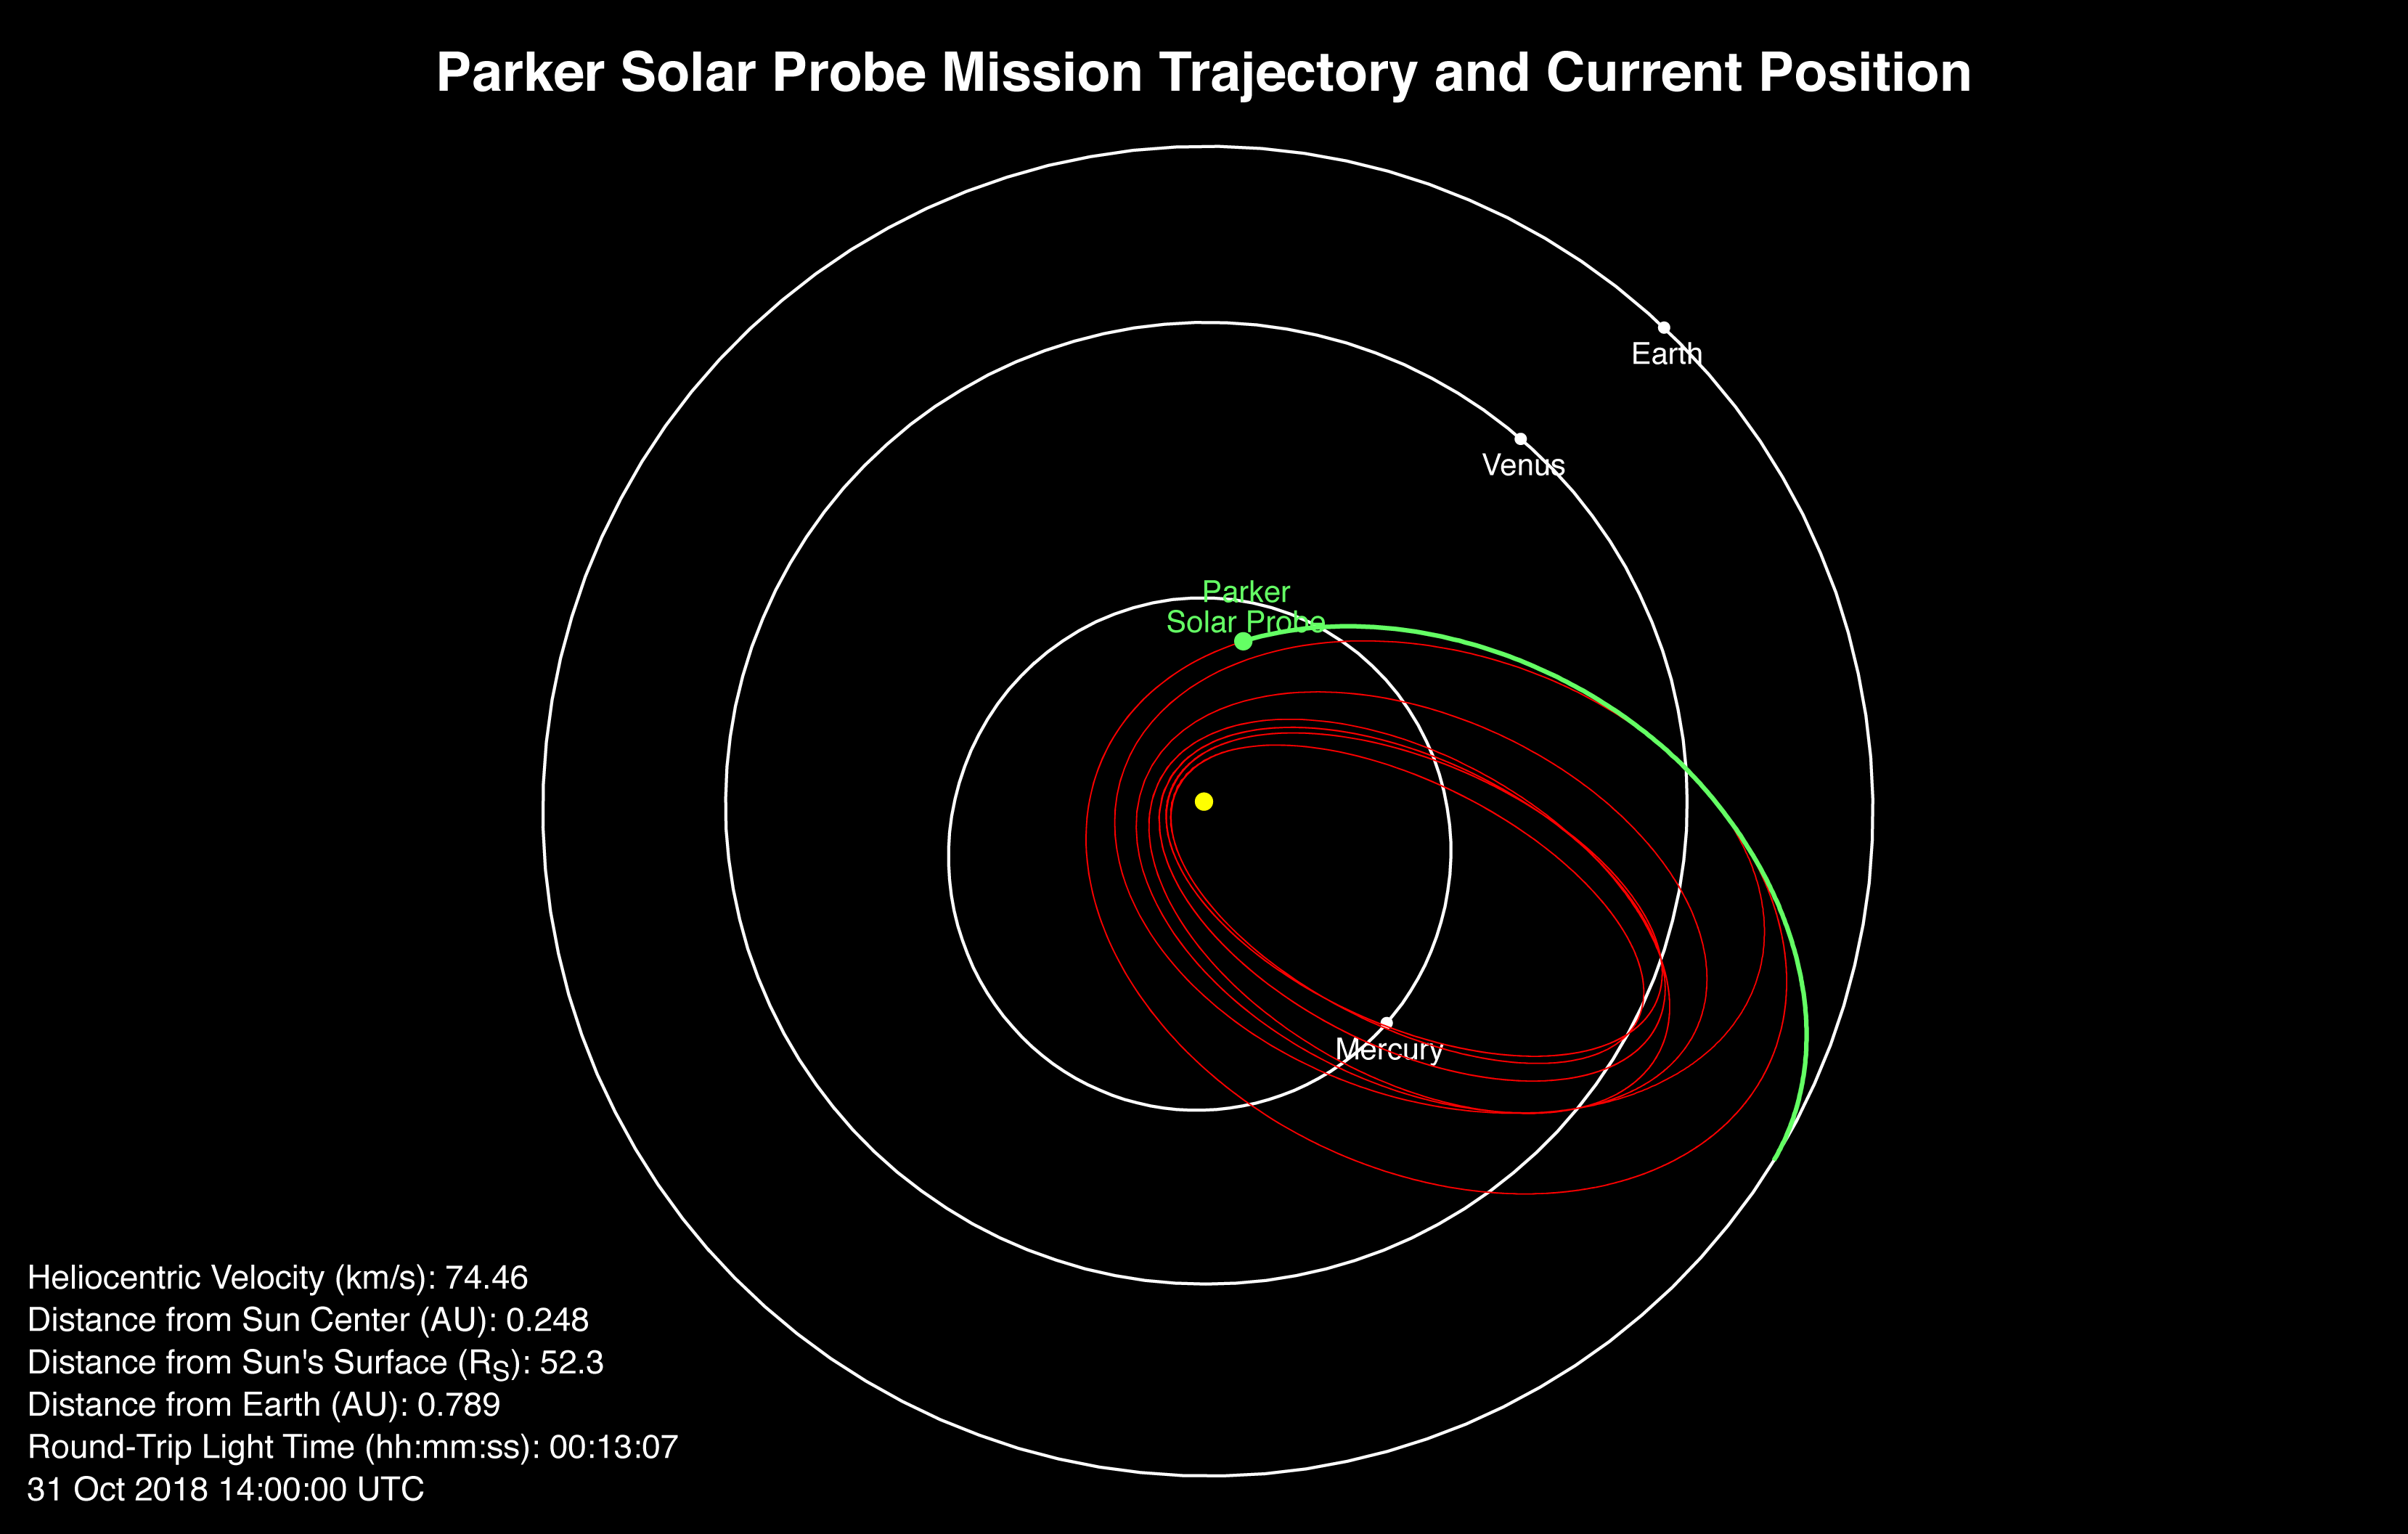 Parker Solar Probe Hereis A Diagramfor Constructing The Actual Plot Of Probes Speed Position And Round Trip Light Time On